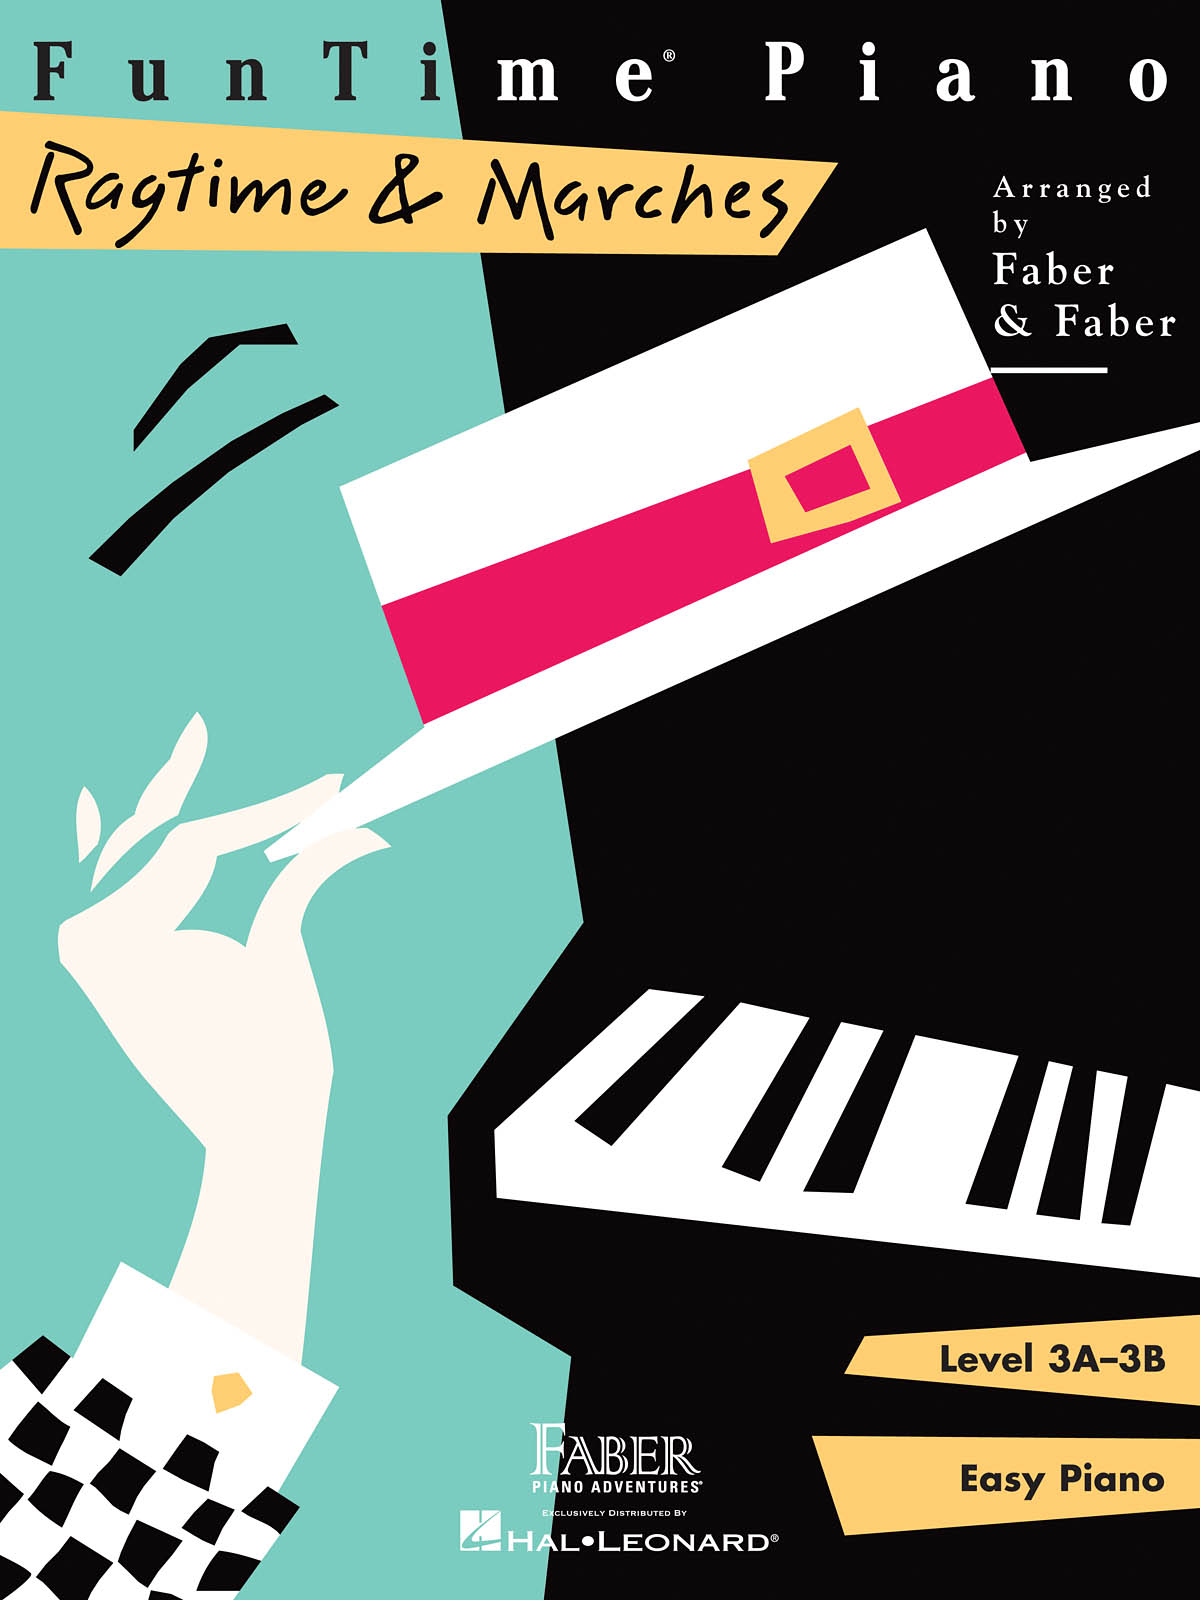 Faber FunTime Ragtime and Marches (Level 3A-3B)